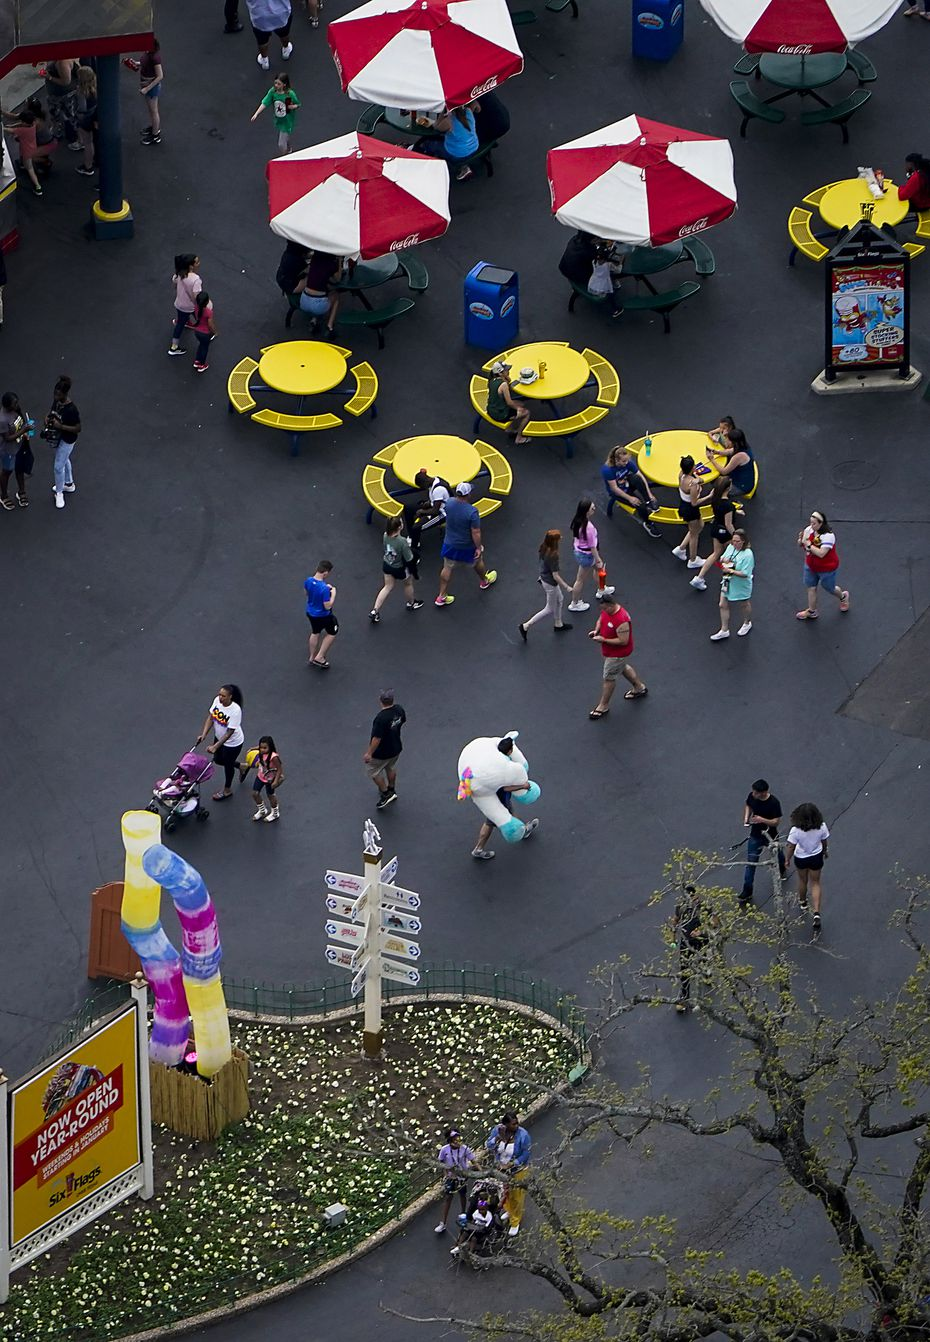 Park visitors walk near a food concession at Six Flags Over Texas on Thursday, March 12, 2020, in Arlington, Texas.